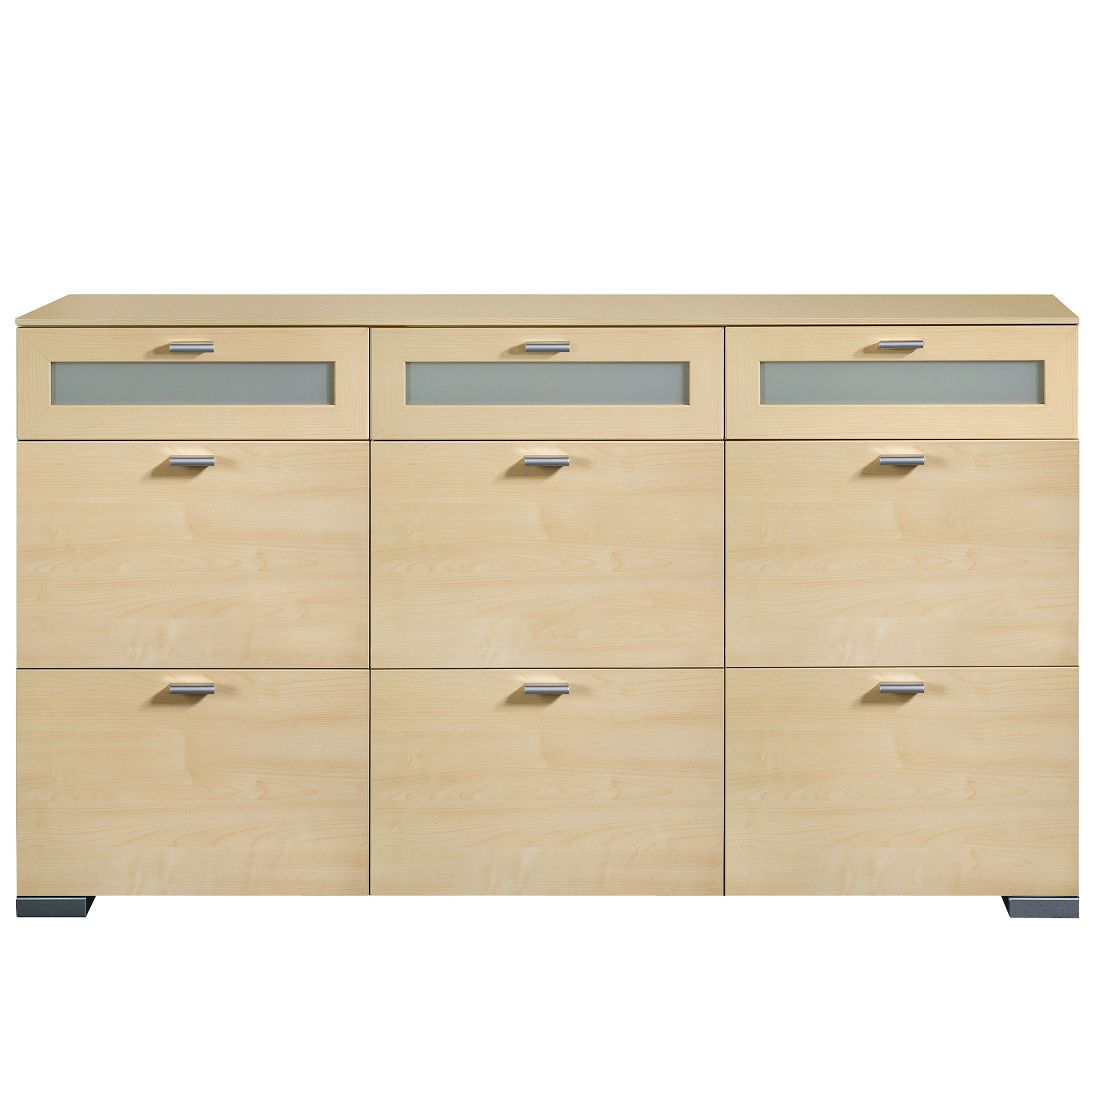 sideboard gallery ahorn dekor sideboard gallery 150cm ahorn. Black Bedroom Furniture Sets. Home Design Ideas